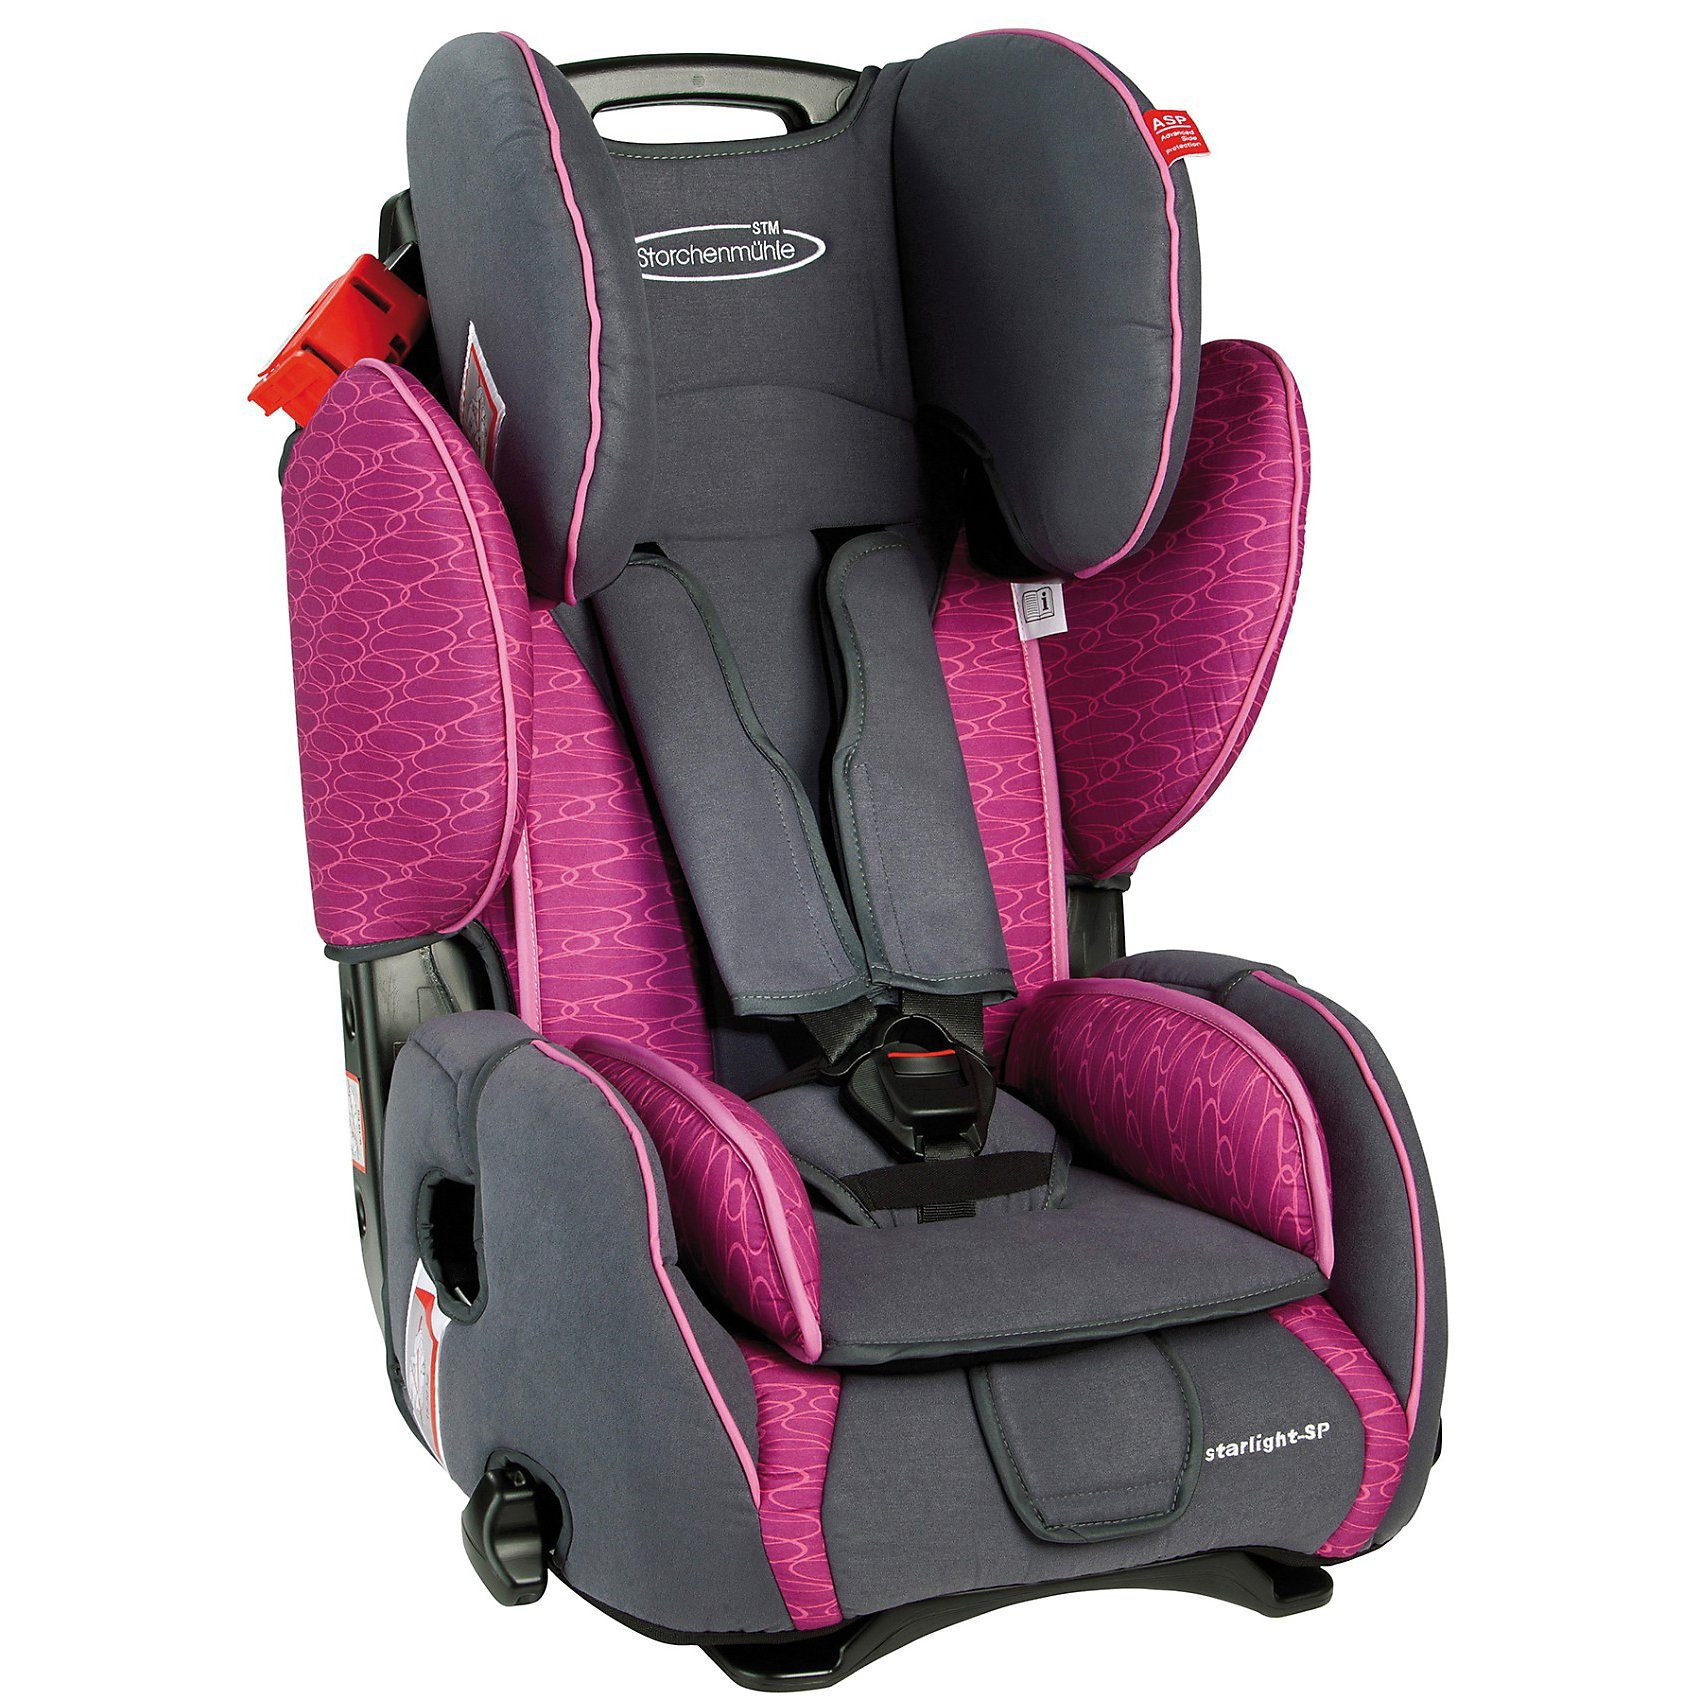 Storchenmühle Auto-Kindersitz Starlight SP, Rosy